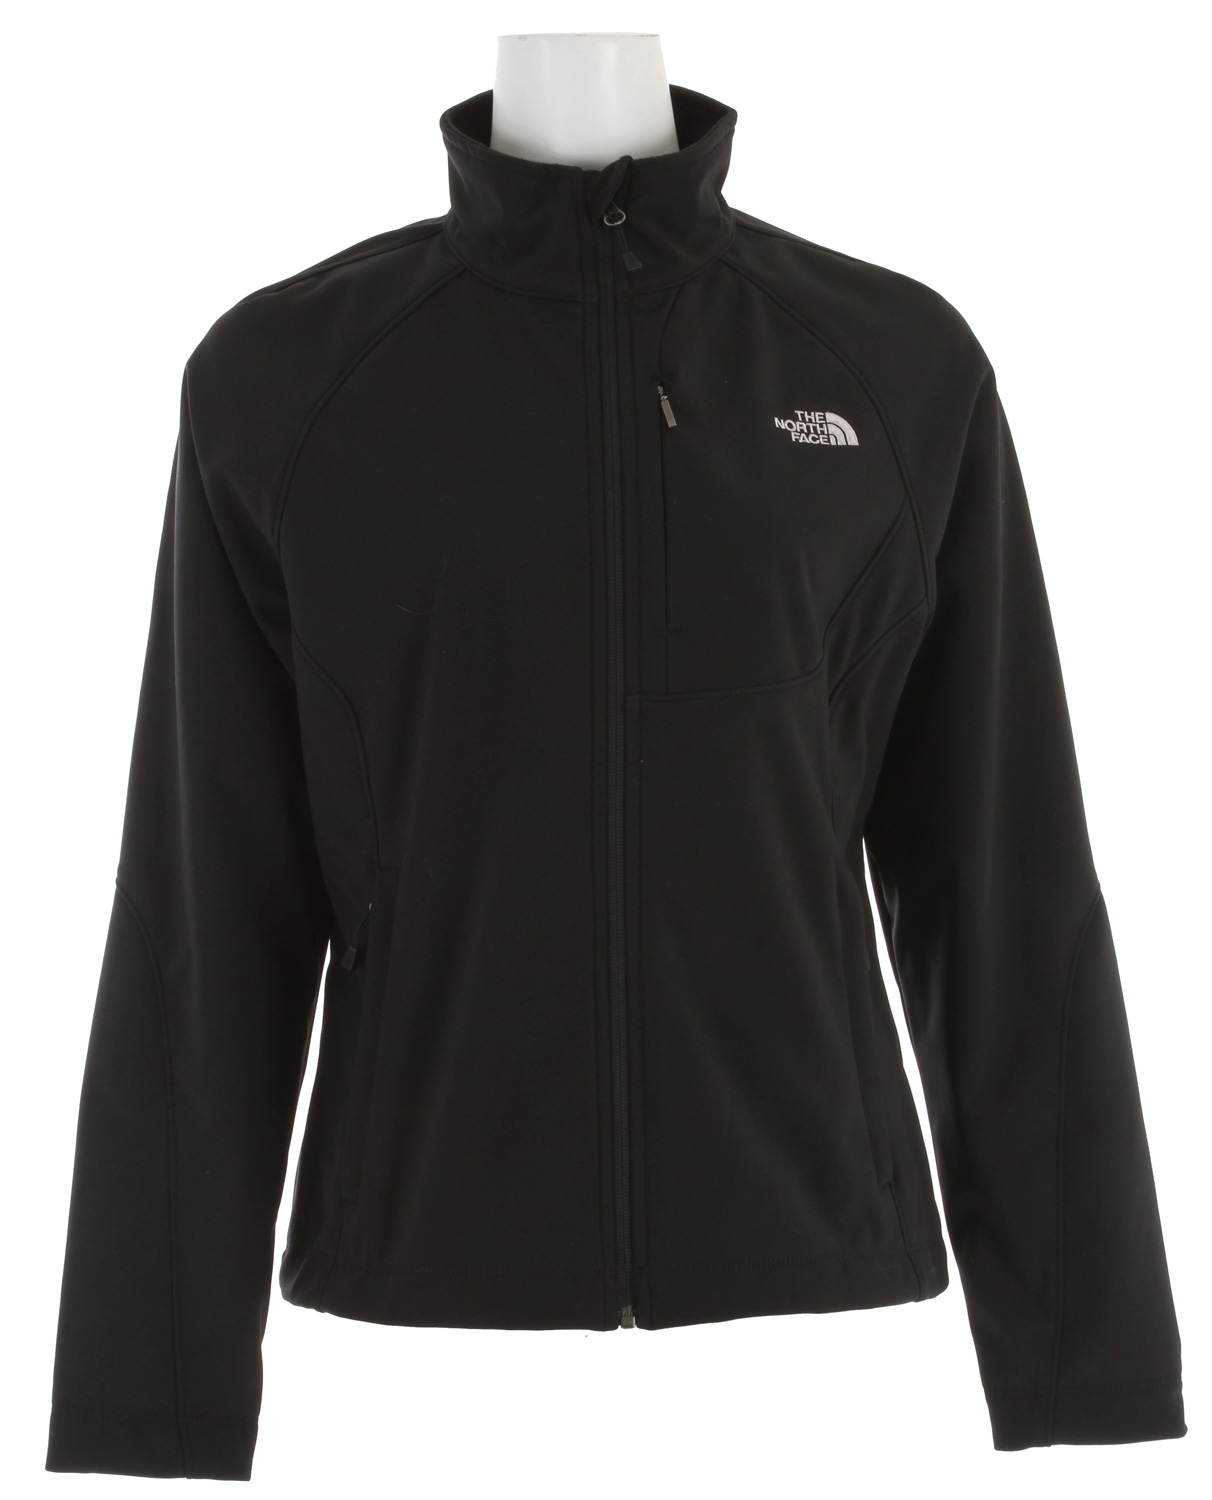 Versatile and widely worn soft shell has enhanced windproof features and a stretchy, comfortable fit; ideal for multiple activities.Key Features of The North Face Apex Bionic Jacket: Standard fit TNF® Apex ClimateBlock fabric wind permeability rated at 0 CFM Fleece backer Napoleon chest pocket Two hand pockets Internal stretch comfort cuffs - $111.95